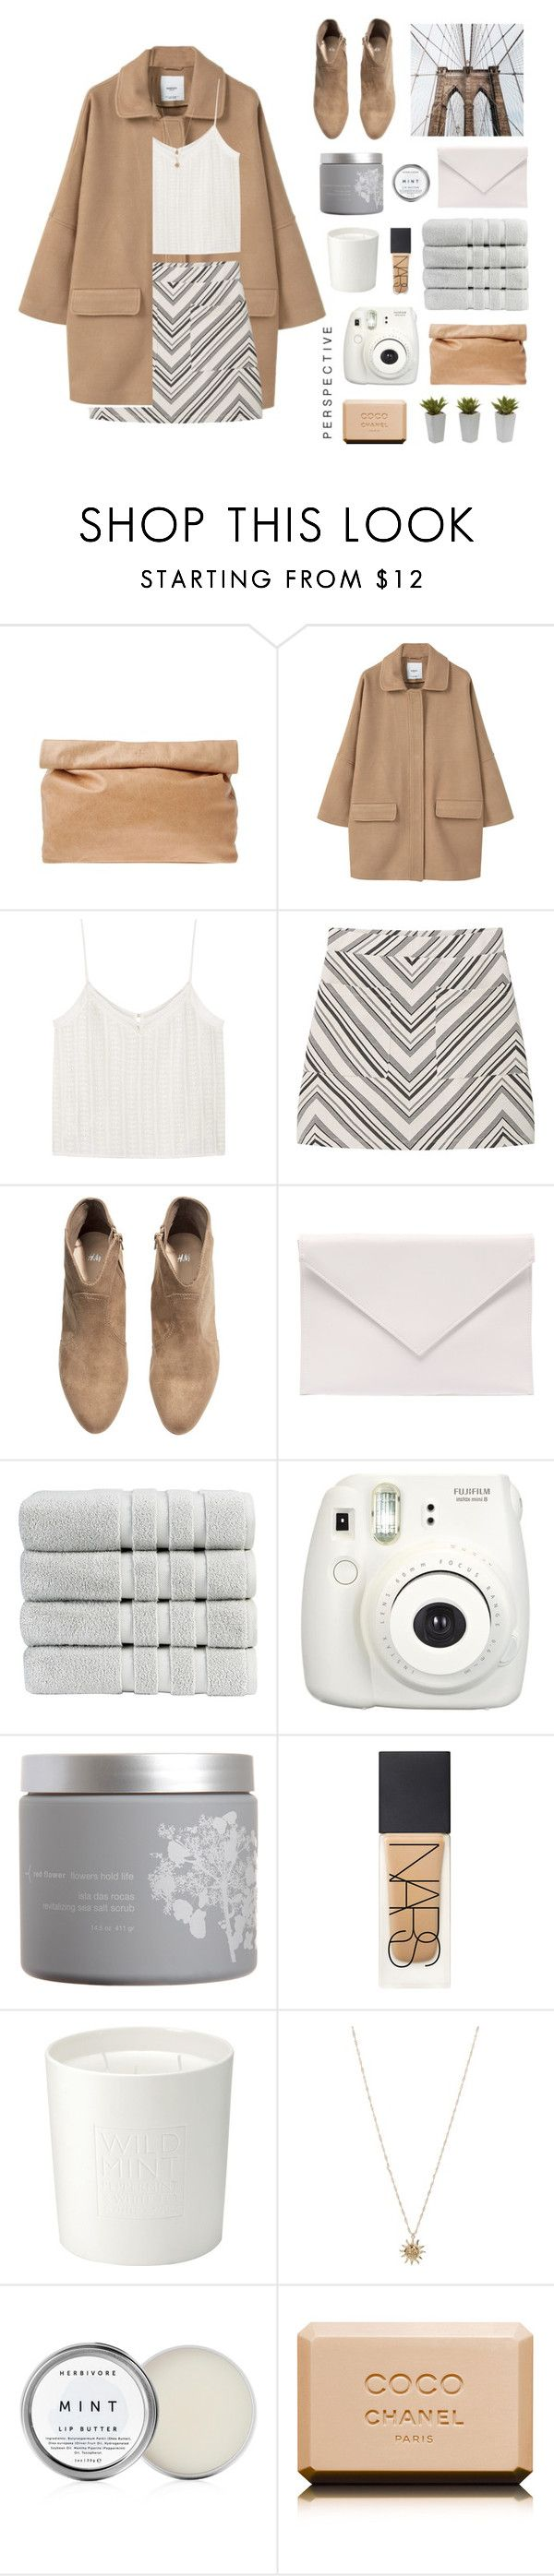 """every time we say goodbye"" by sabulous836 ❤ liked on Polyvore featuring Marie Turnor, MANGO, H&M, Verali, Christy, Fujifilm, red flower, NARS Cosmetics, The White Company and ASOS"